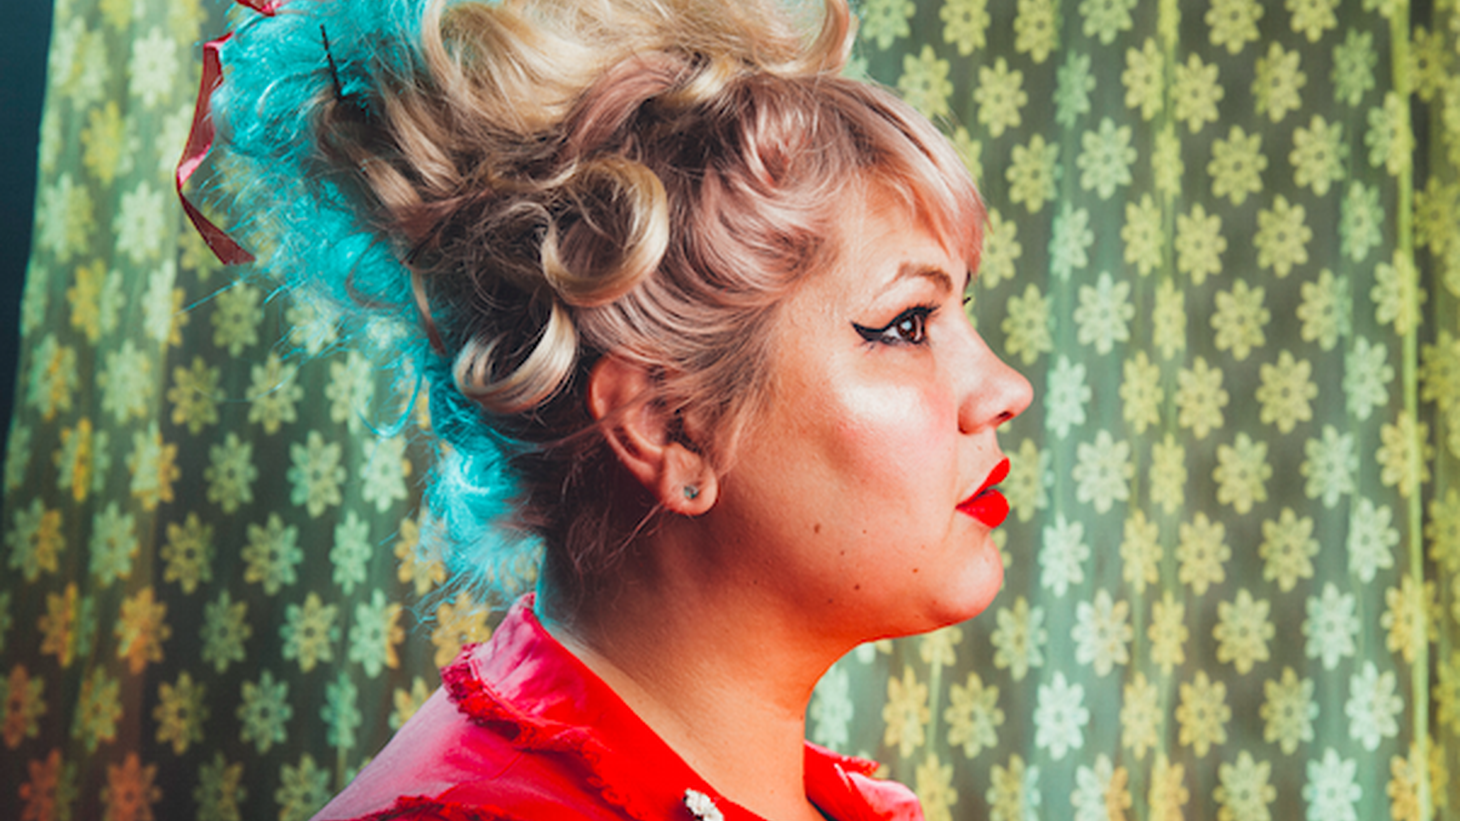 Shannon Shaw, lead vocalist, bassist, and founder of Shannon & the Clams, has struck out on her own with her first solo album, produced by The Black Keys' Dan Auerbach.